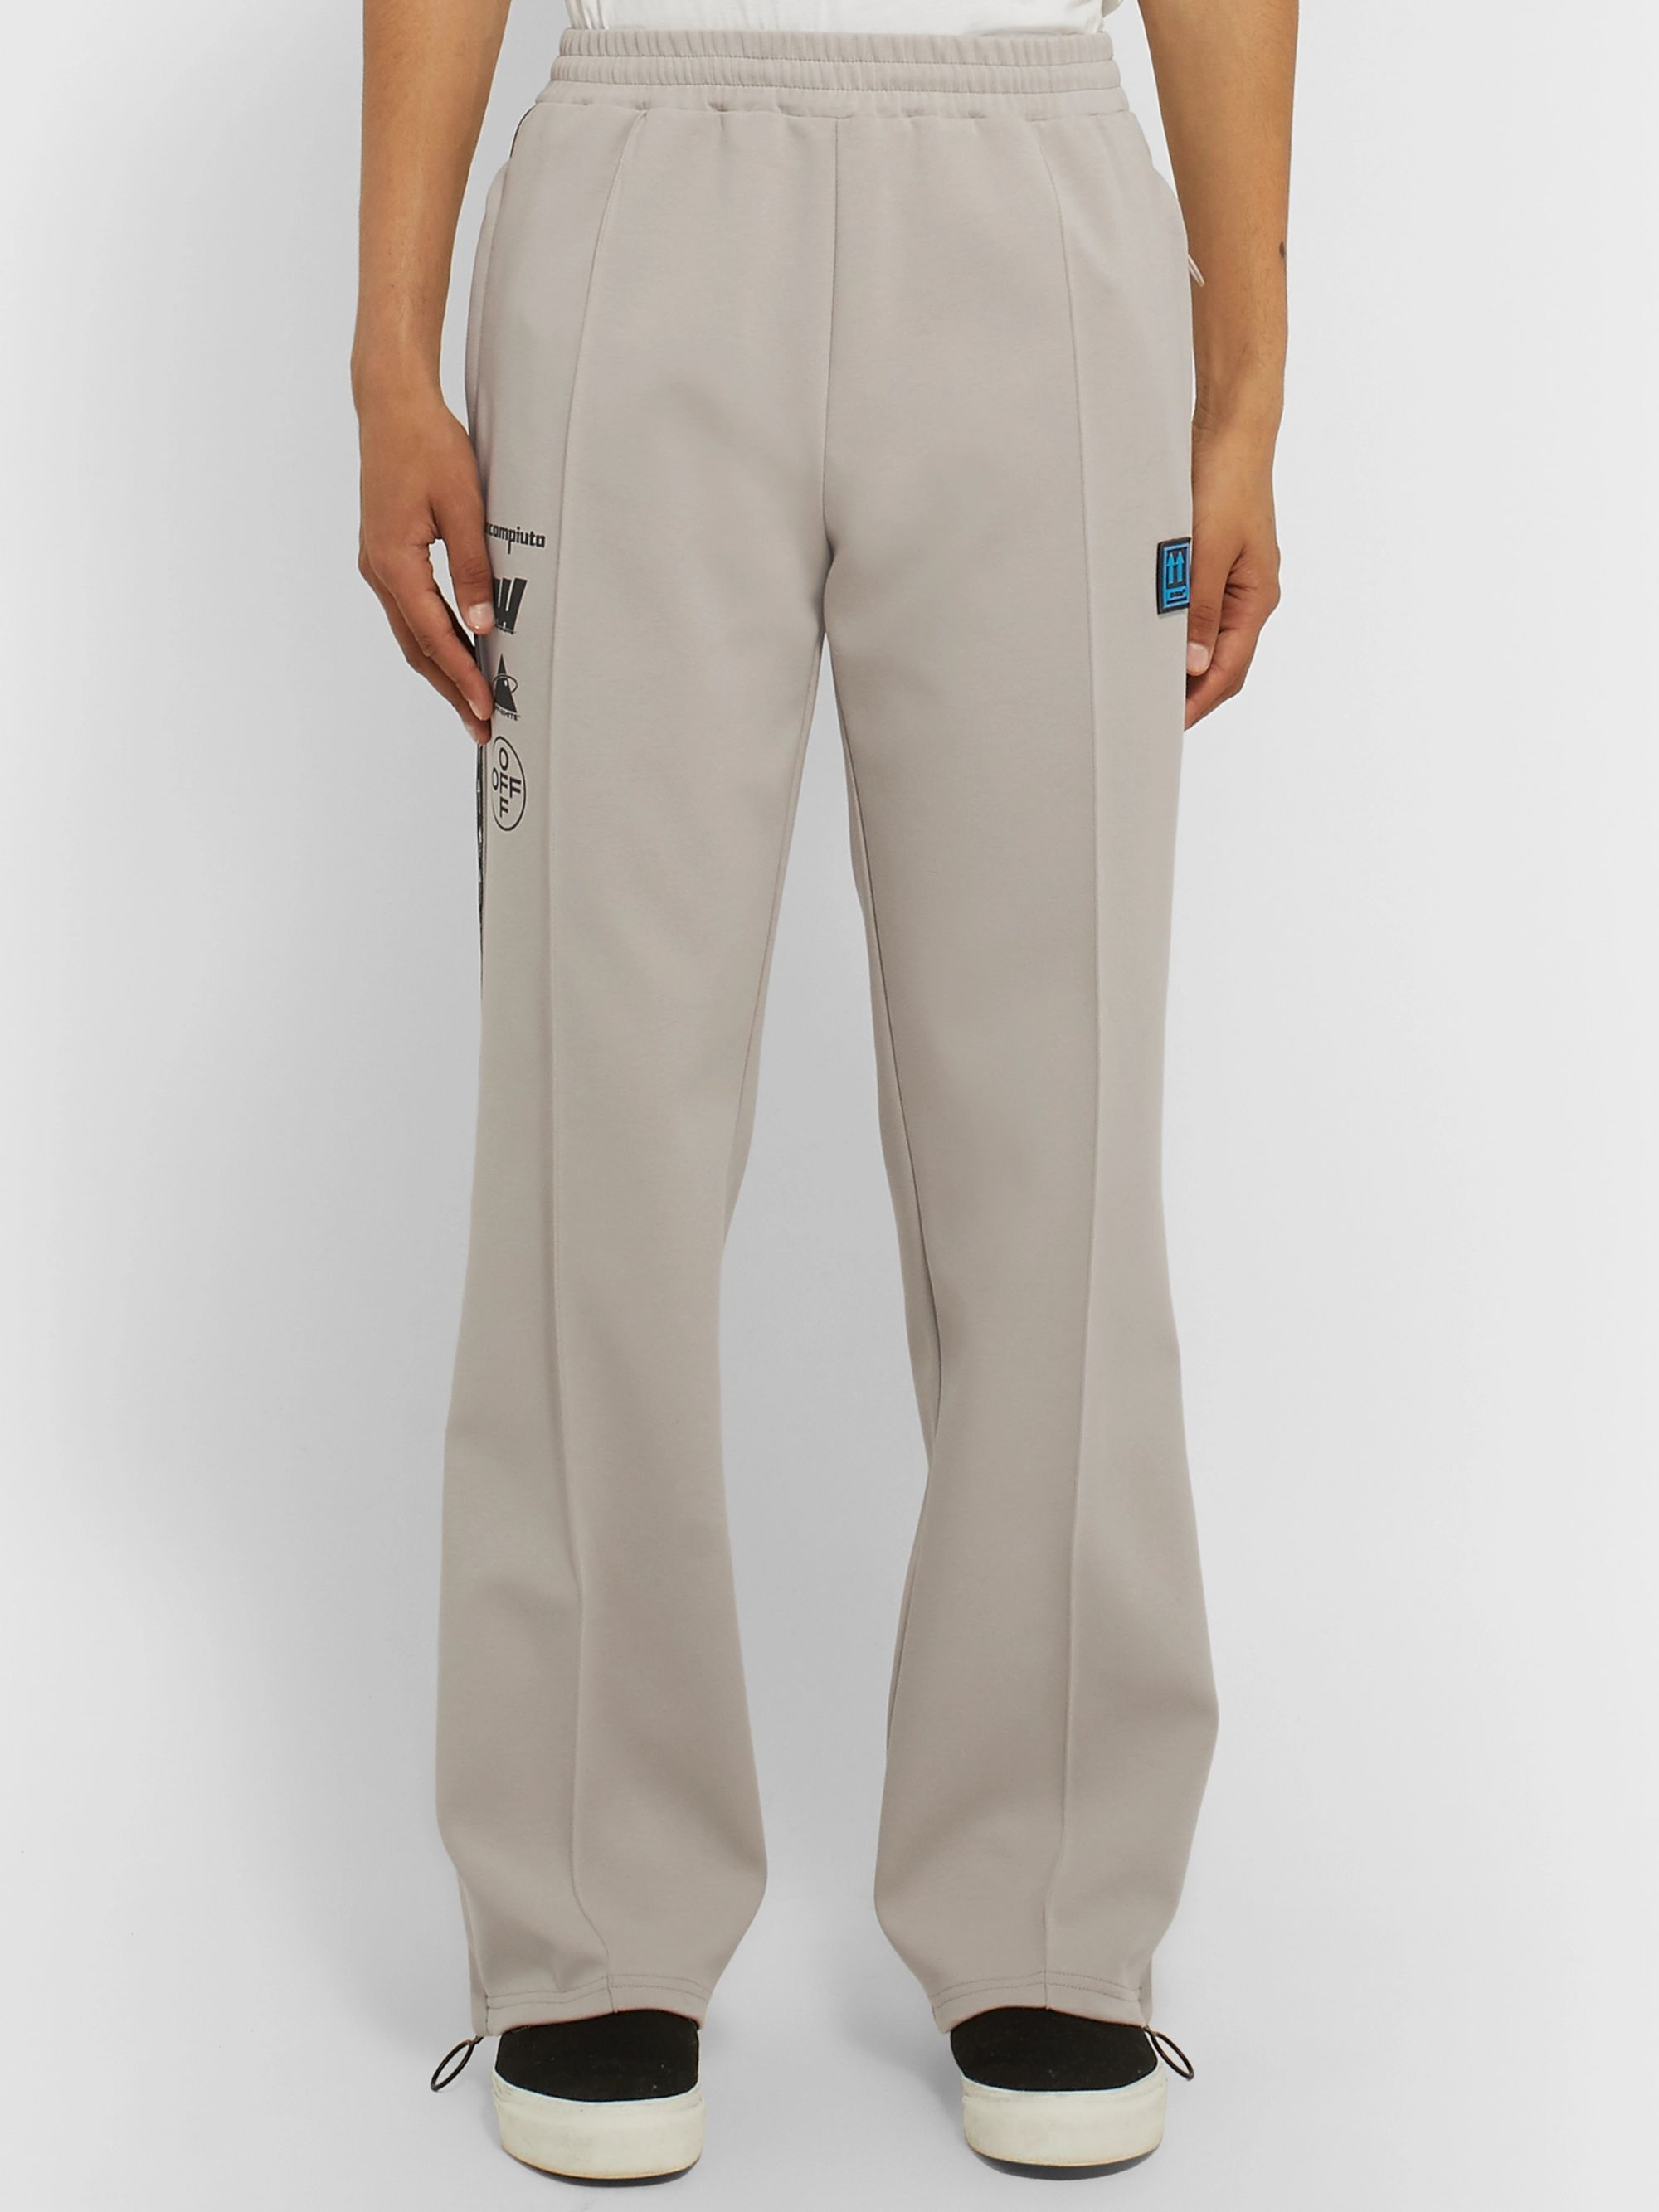 Off-White Glittered Webbing-Trimmed Cotton-Blend Track Pants